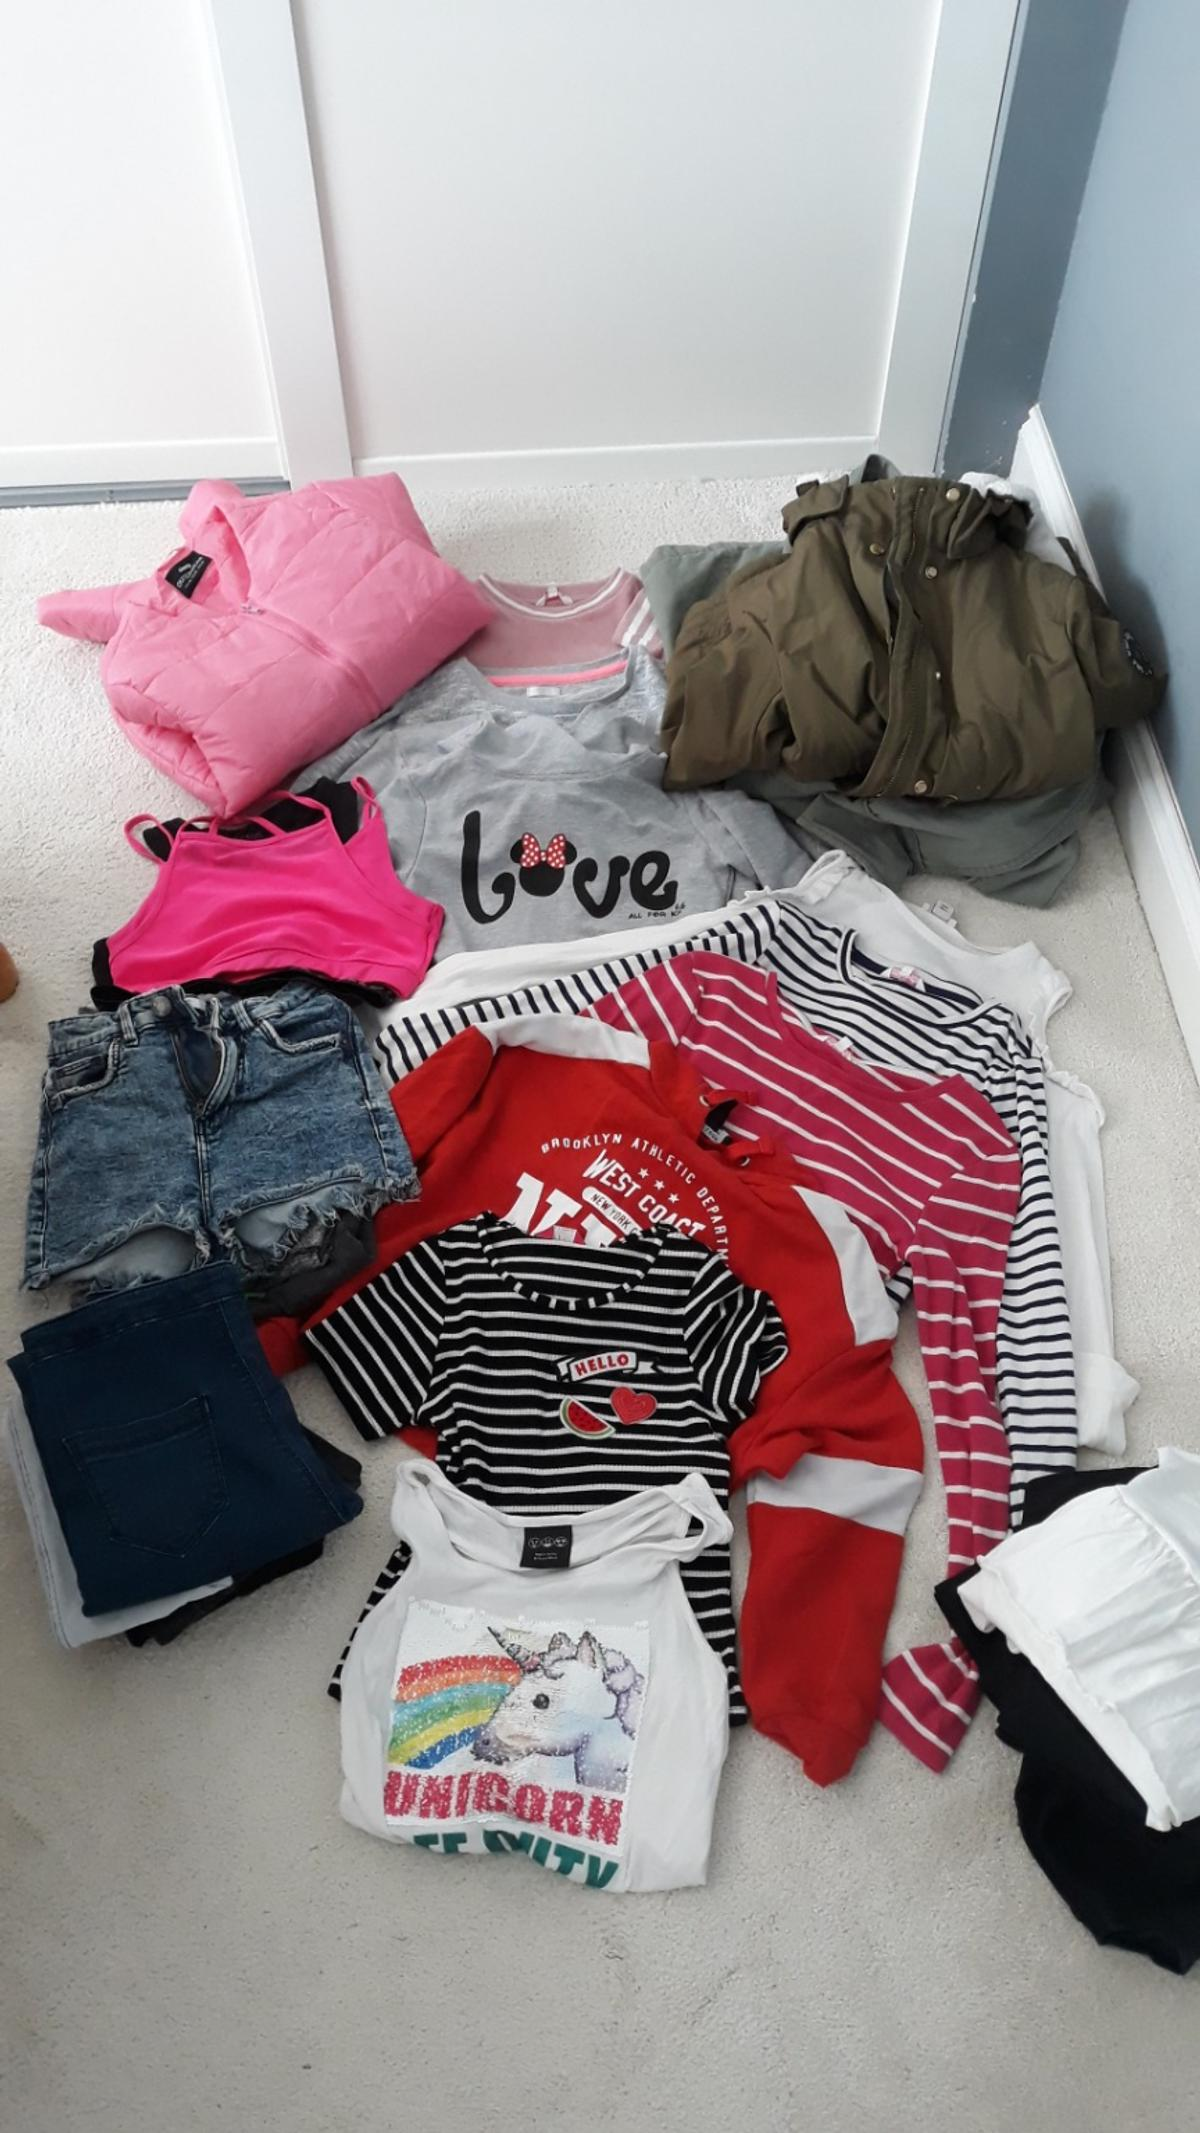 3321c7f04dcd9e clothes bundle for 10-11 year old girl in Northampton for £15.00 for ...